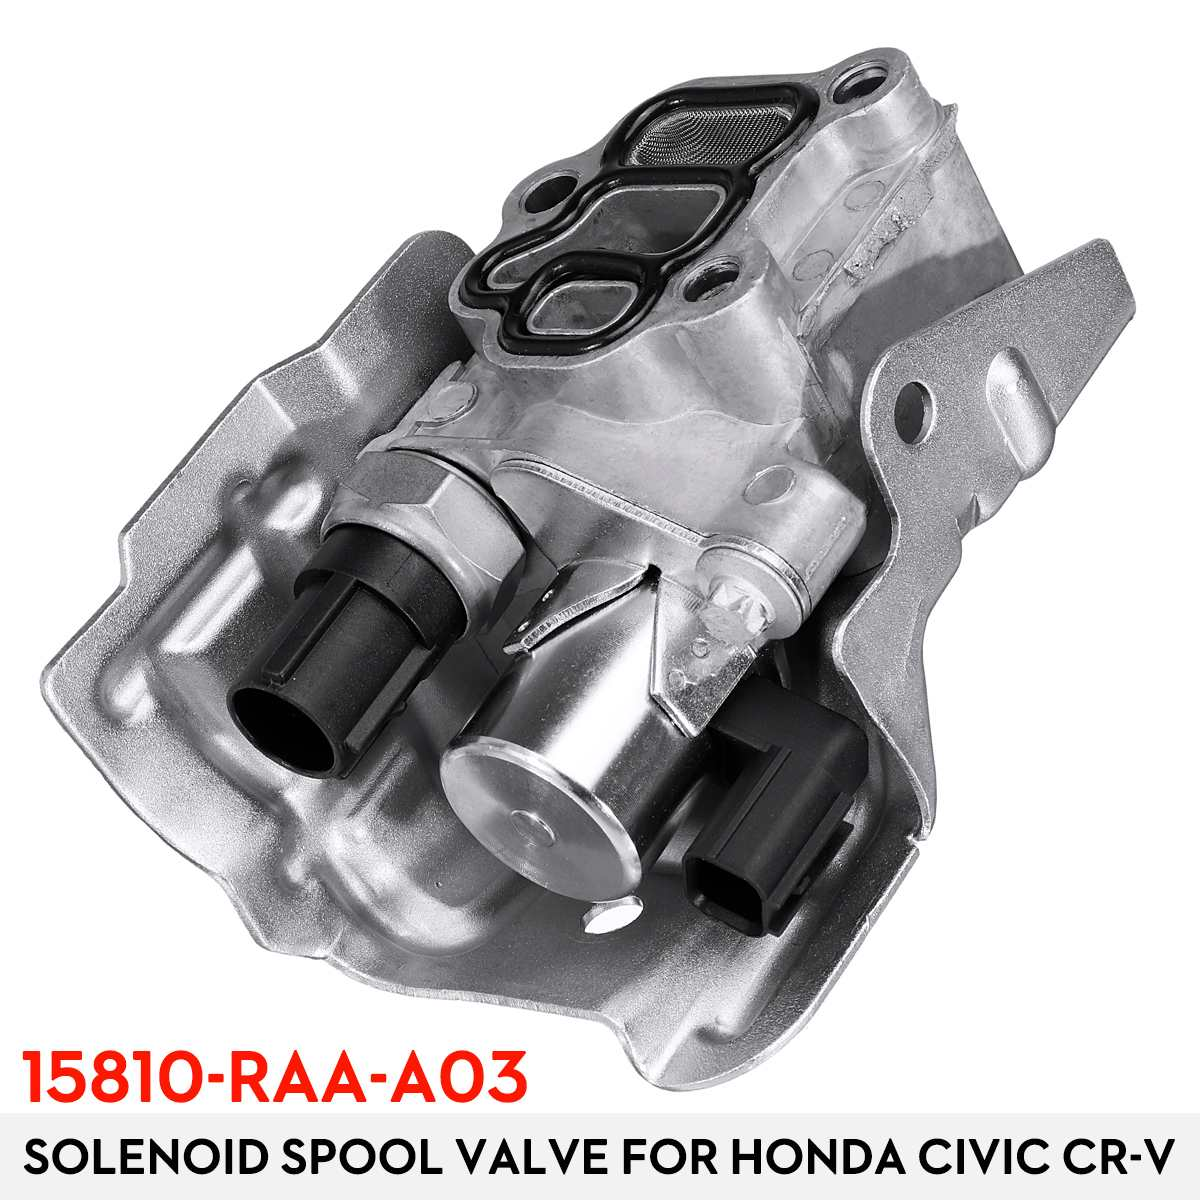 Solenoid Spool Valve 15810-RAA-A02 15810RAAA02 15810-RAA-A03 15810RAAA03 For Honda ACCORD CRV CIVIC RSX ELEMENT